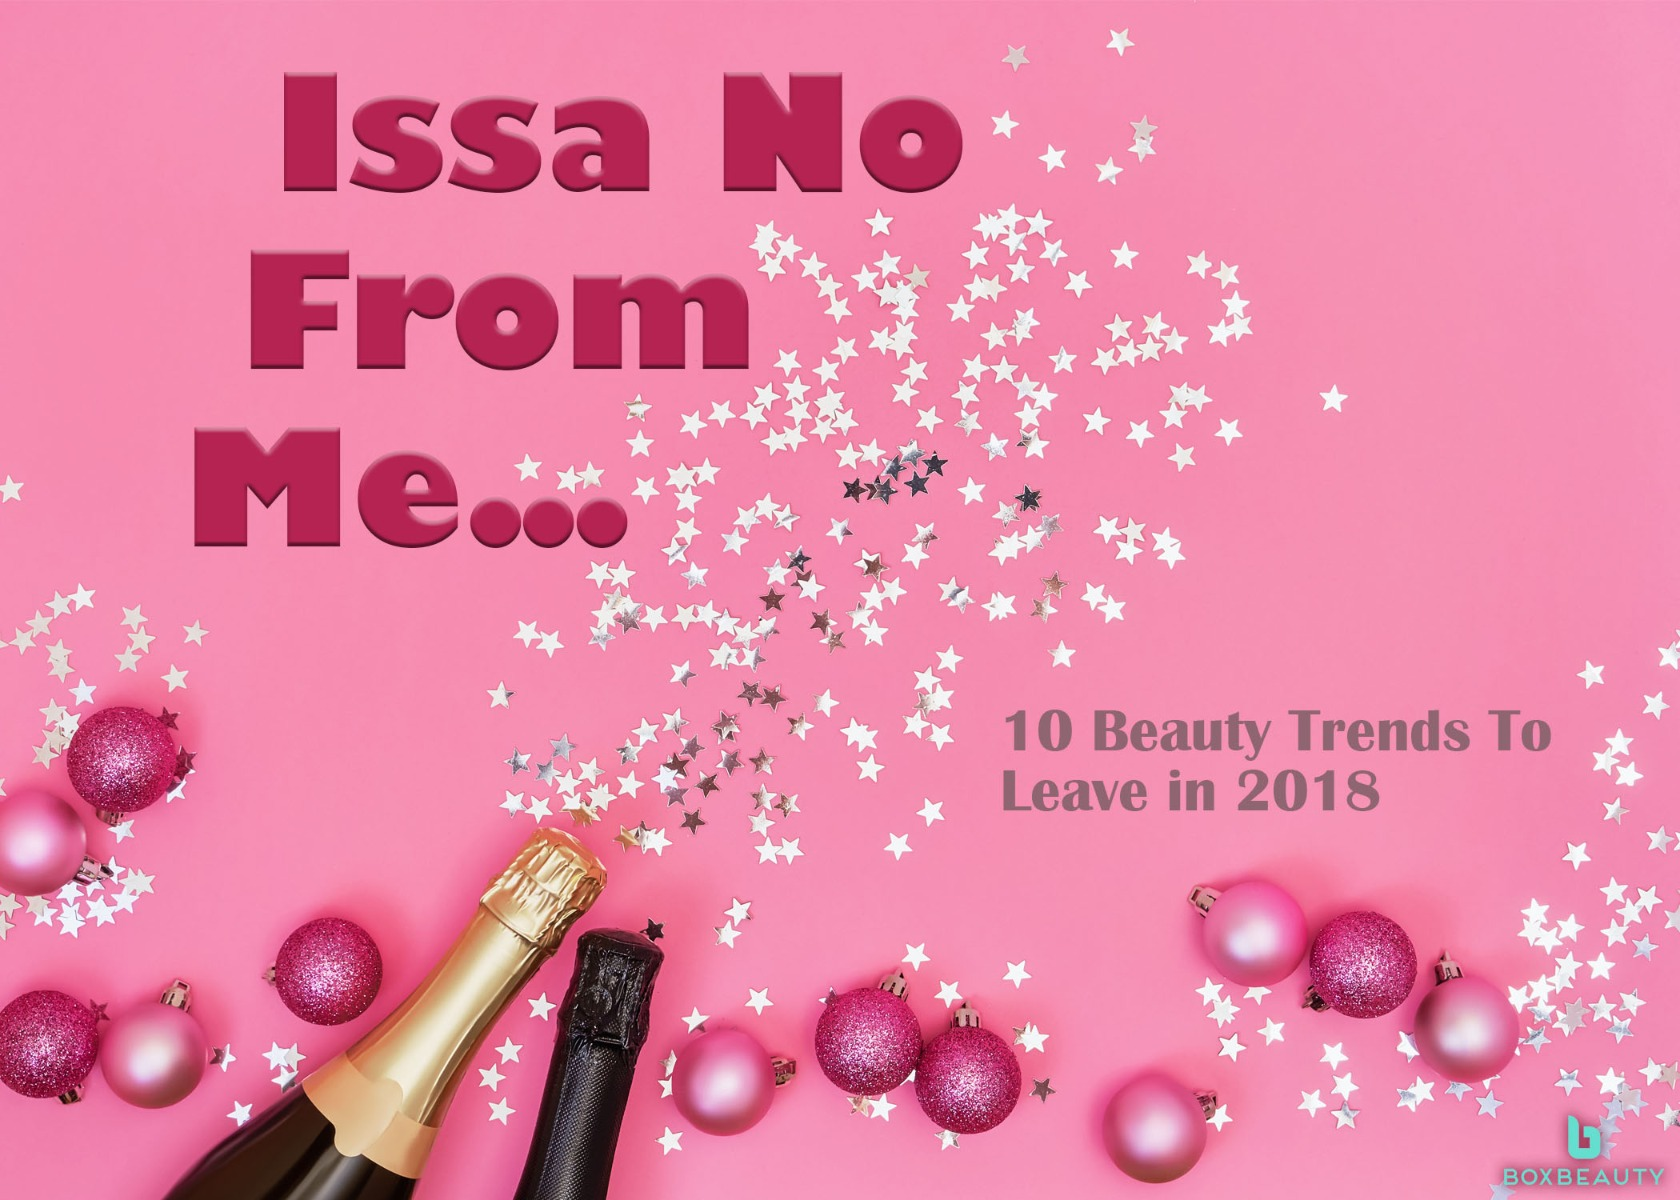 Issa No For Me: 10 Beauty Trends to Leave in 2018